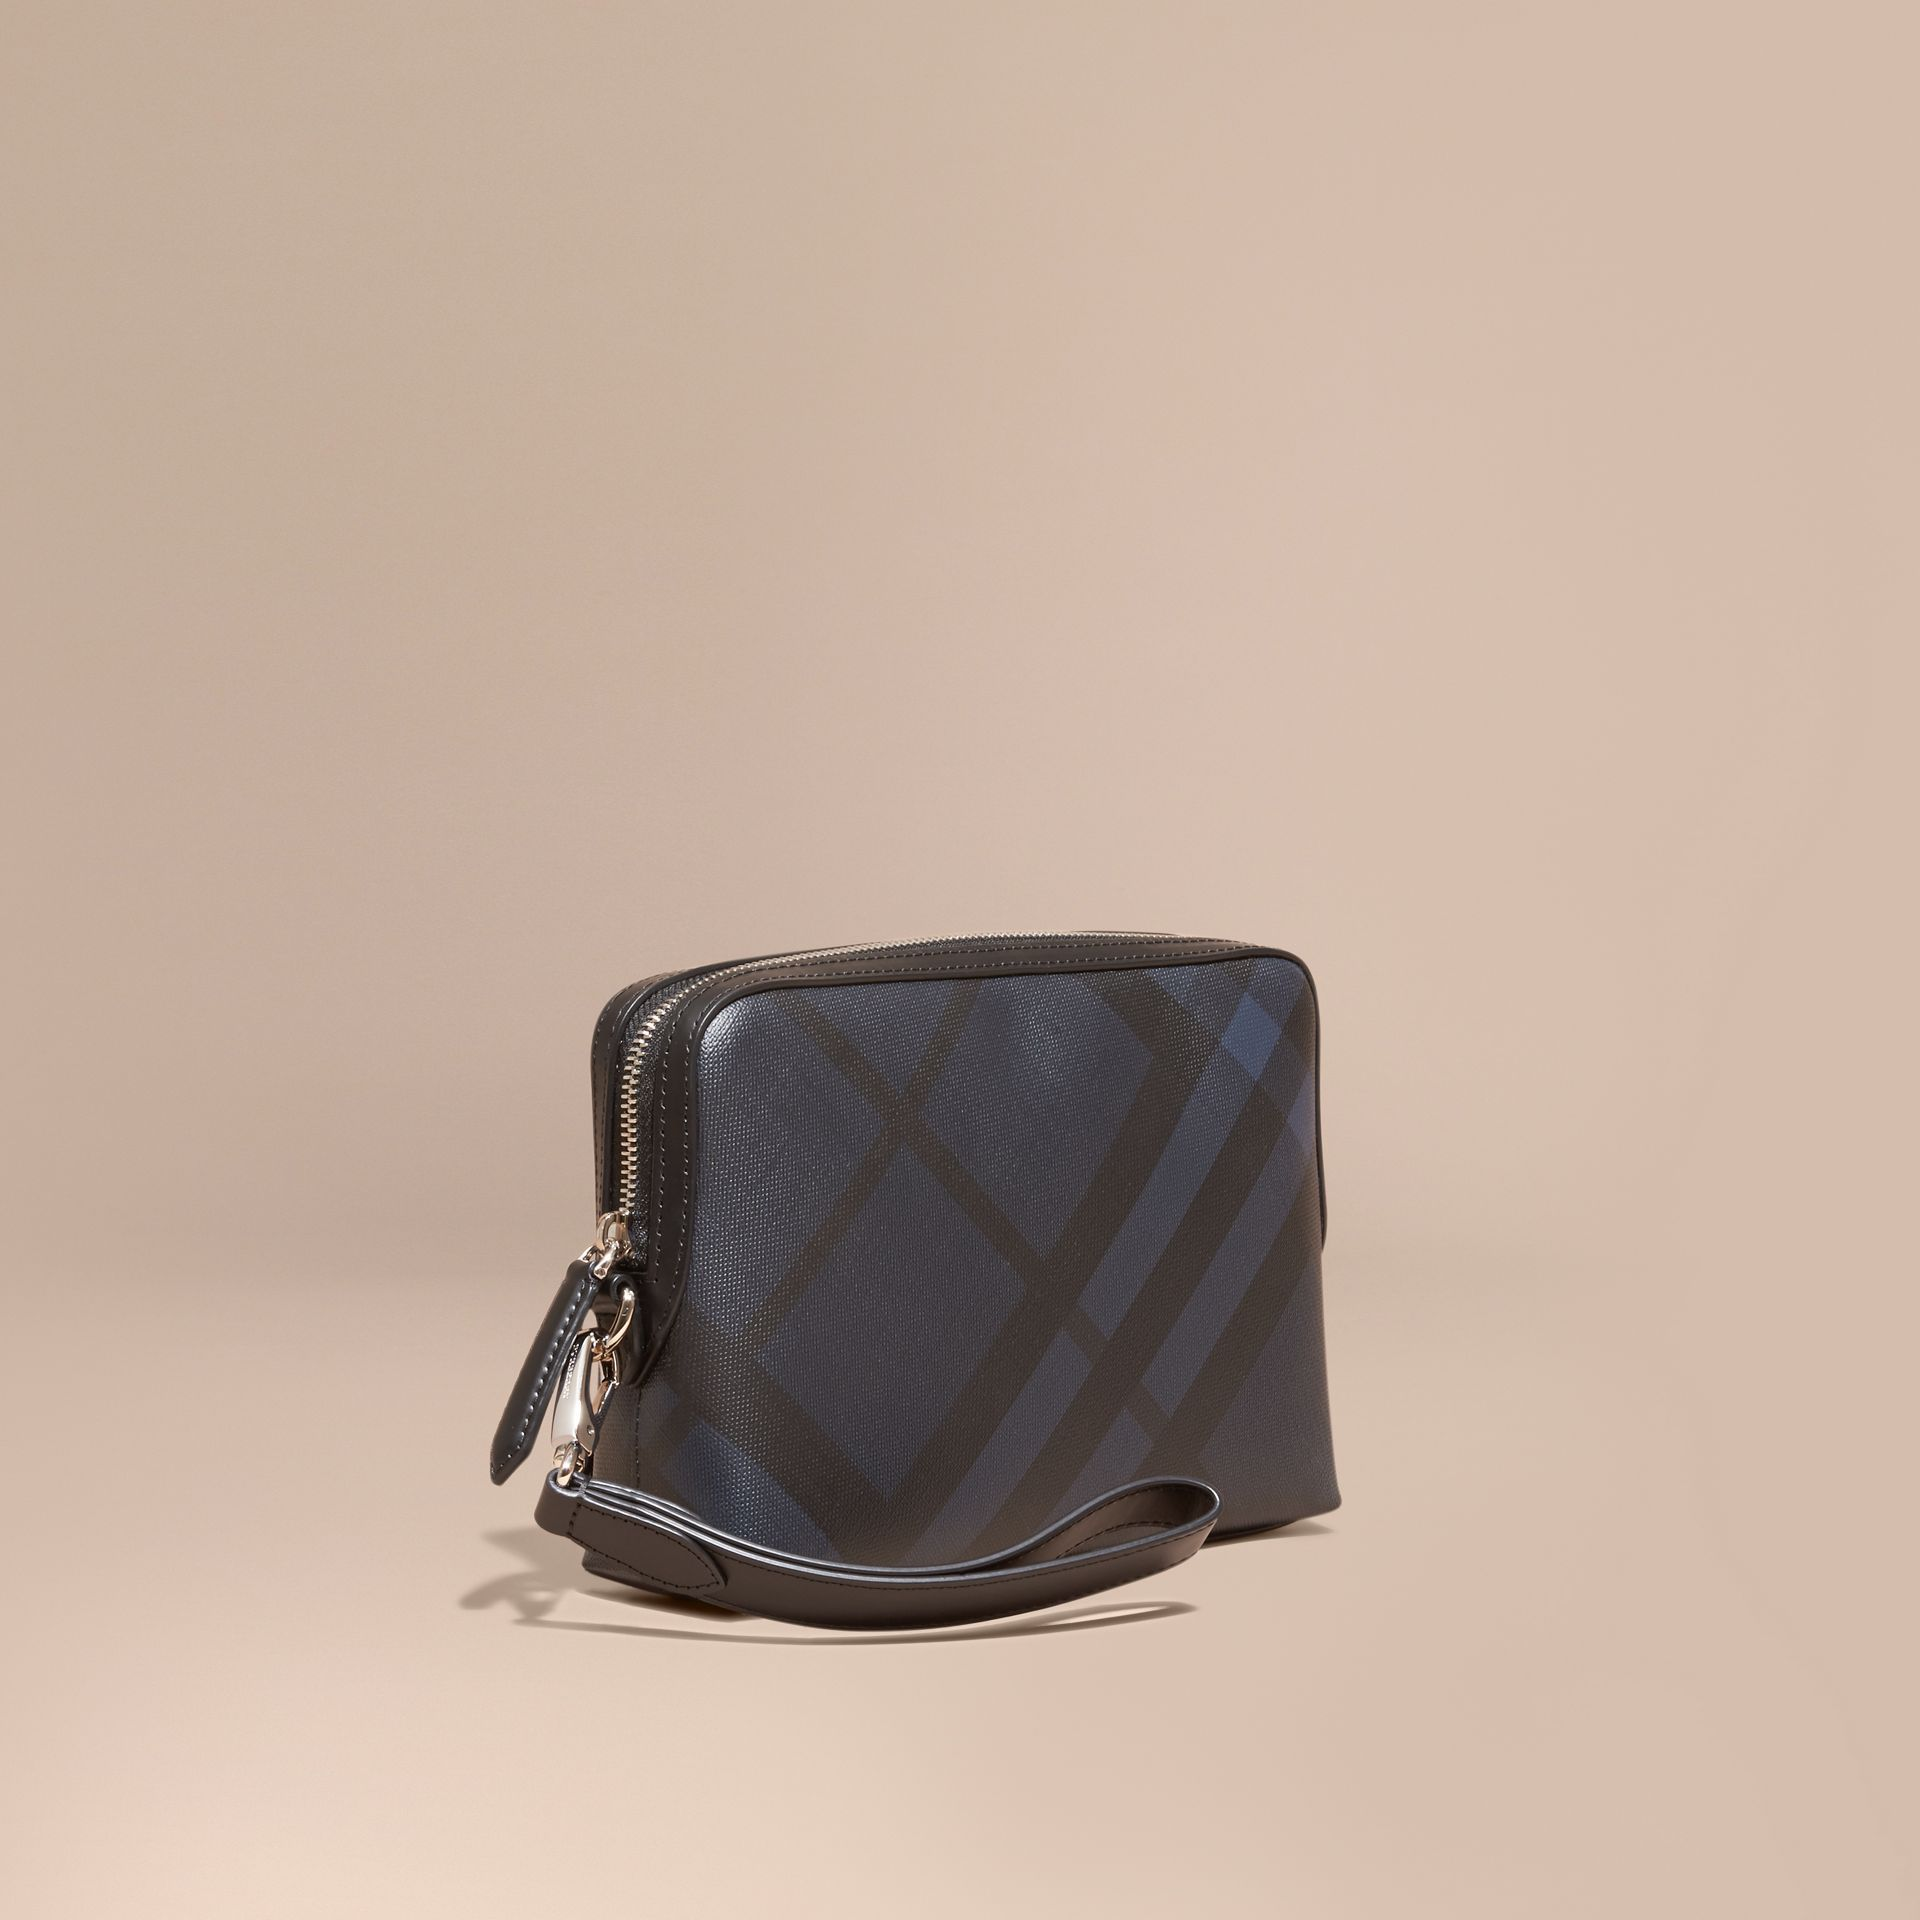 Leather-trimmed London Check Pouch Navy/black - gallery image 1